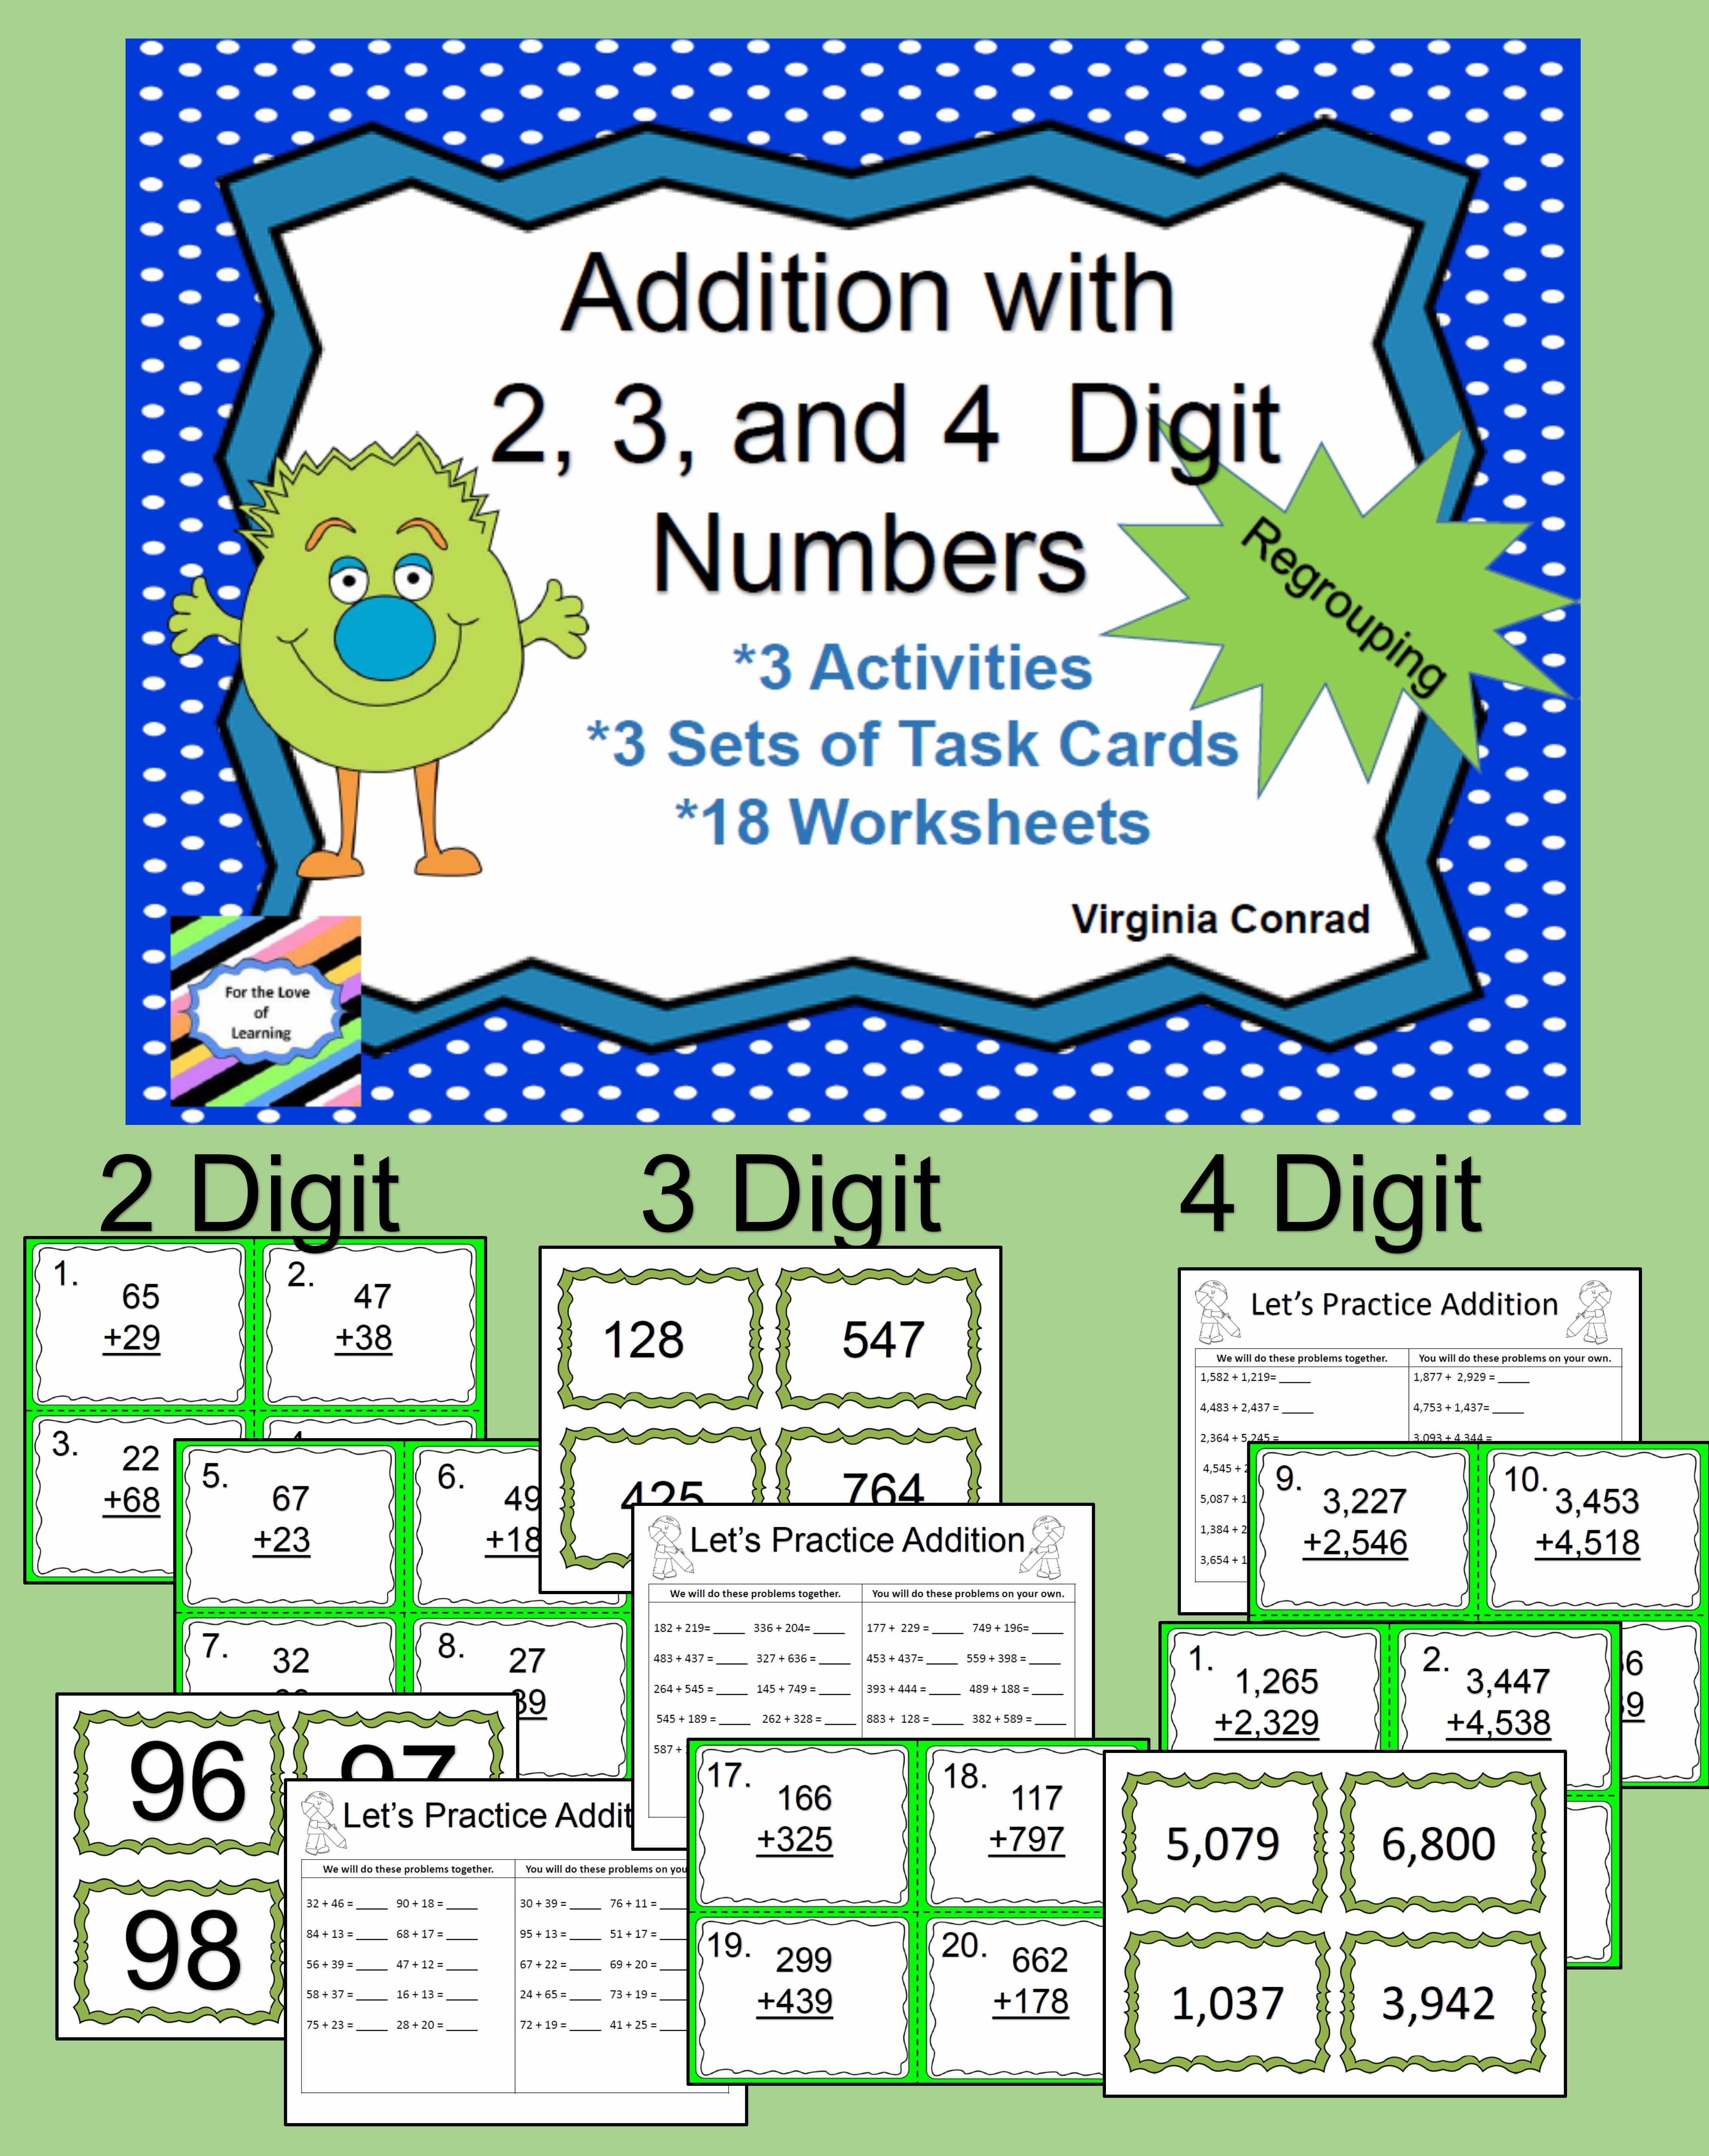 Predownload: 3 Whole Group Activities 3 Sets Of Task Cards 18 Worksheets All Focused On Regrouping With 2 3 And 4 Dig Math Learning Center Math Task Cards Balanced Math [ 5376 x 4262 Pixel ]